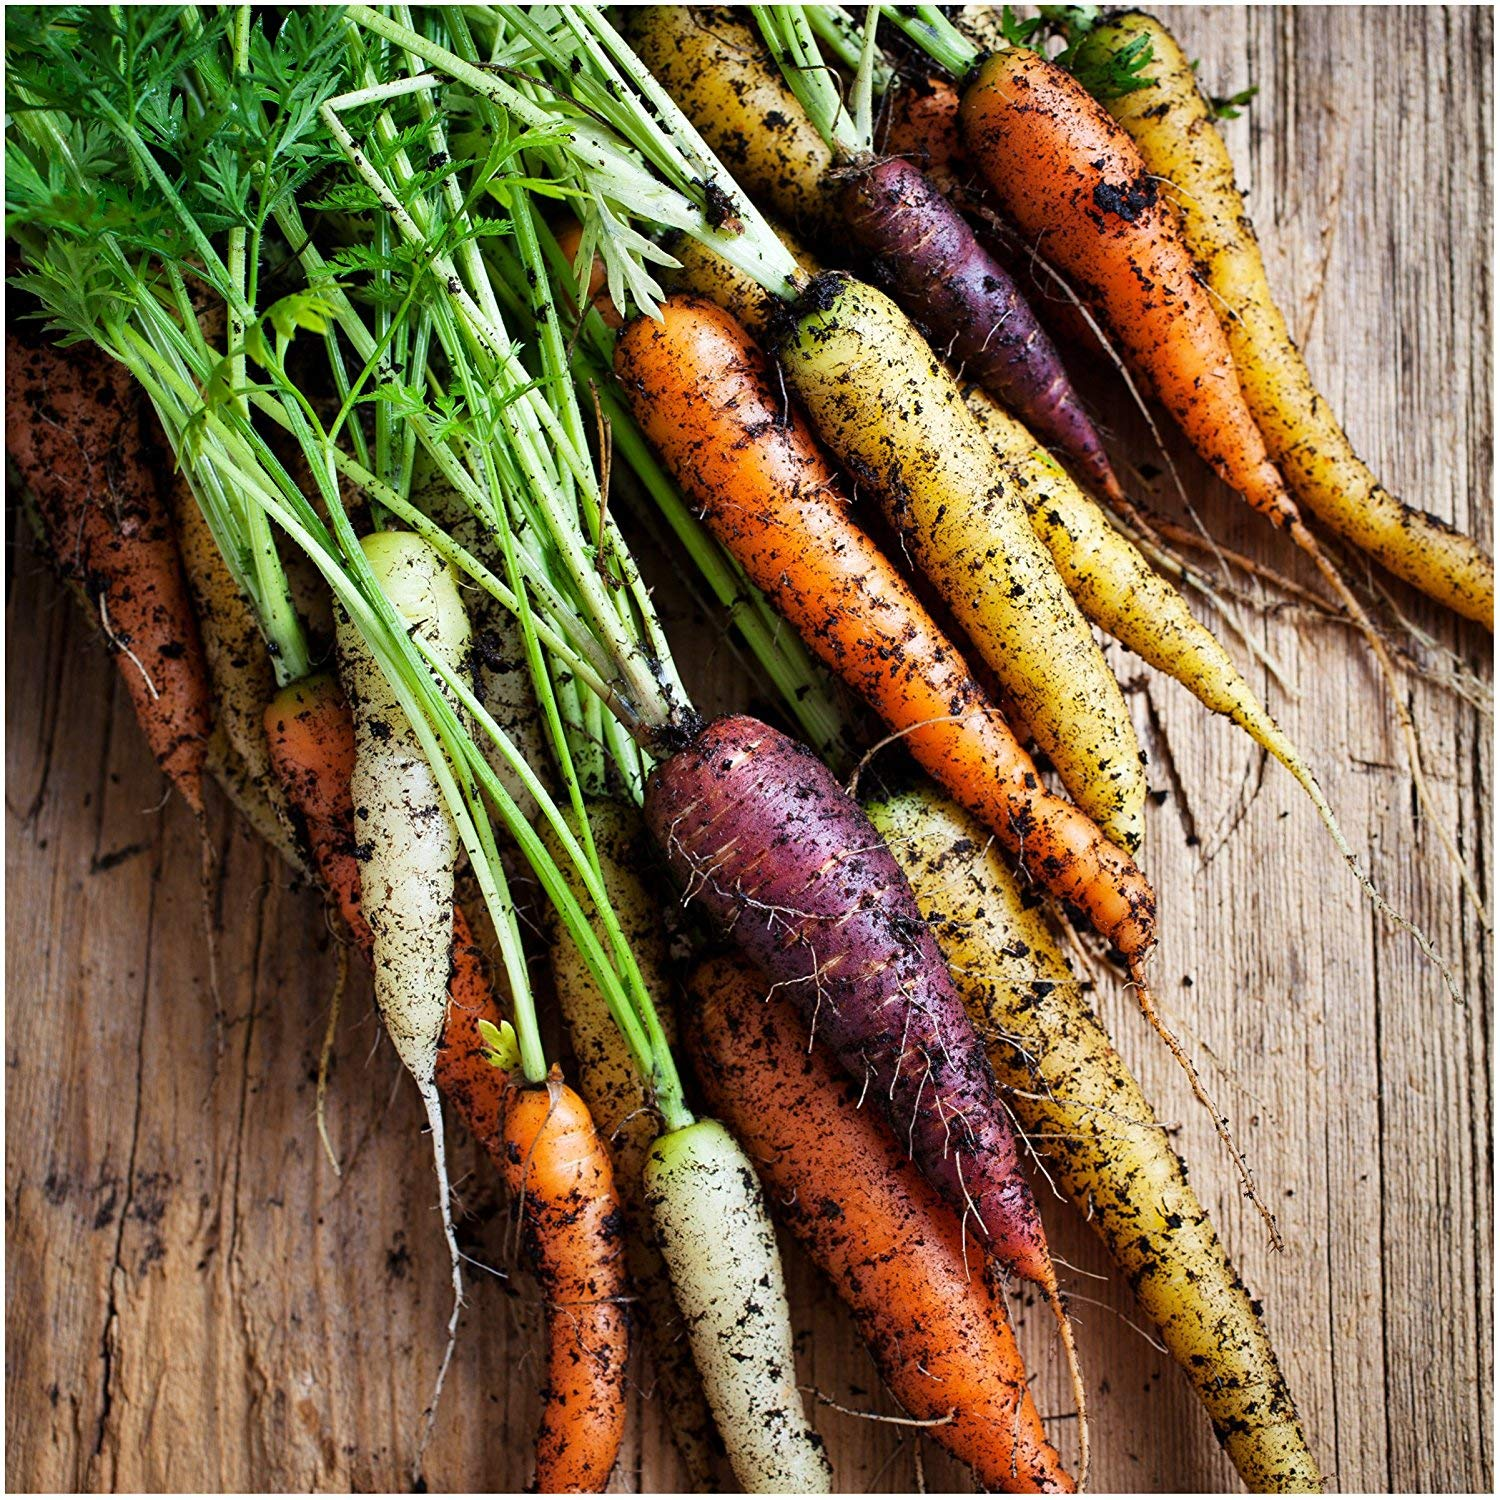 Non GMO Rainbow Blend Carrot Seeds Rare Varieties 500+ Premium Heirloom Seeds 85/% Germination Rate Colorful Mix /& Fantastic Addition to Your Garden! Islas Garden Seeds Highest Quality